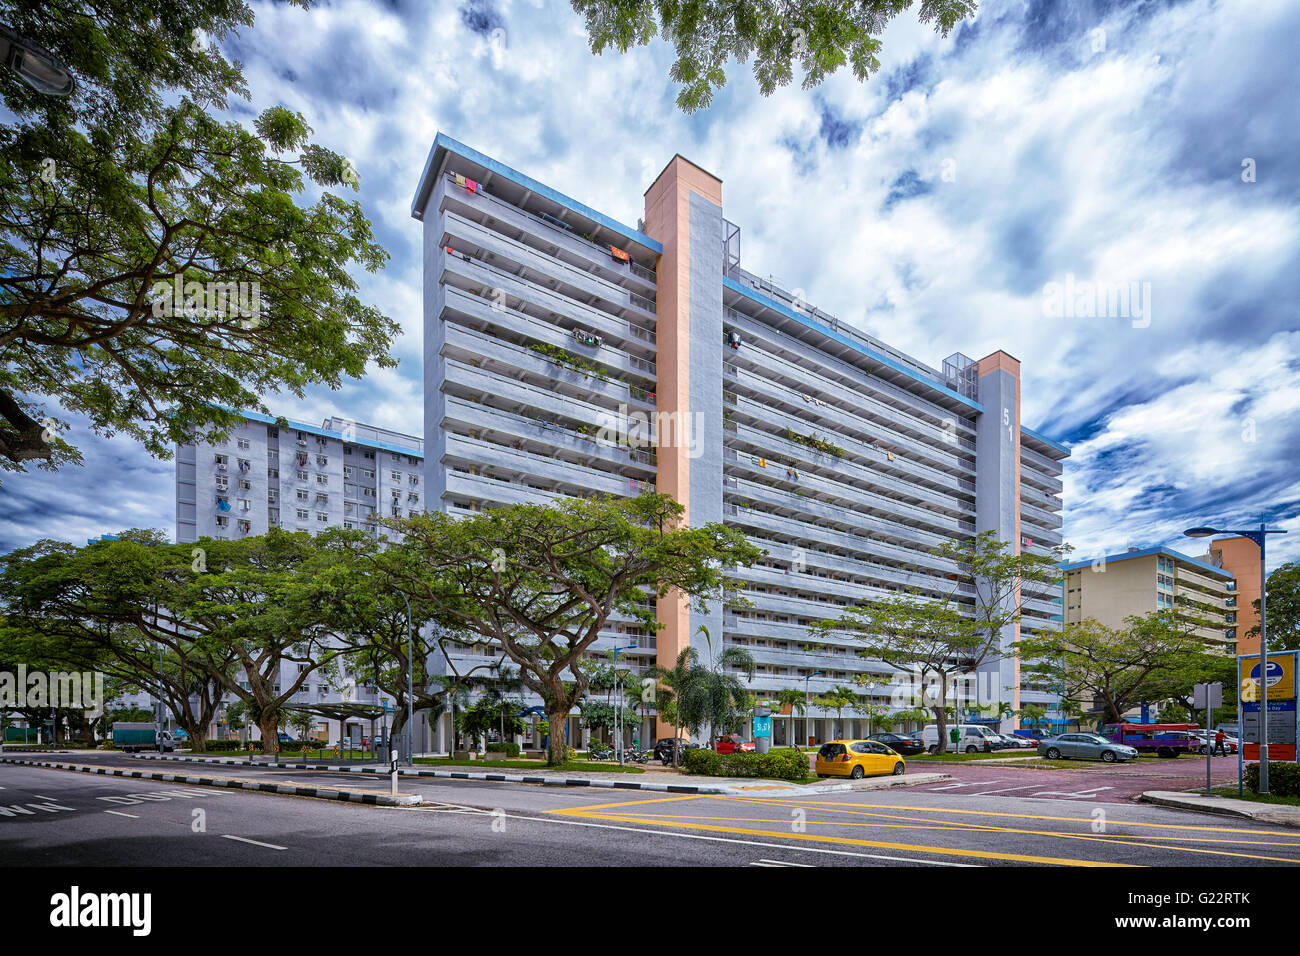 An HDB public housing estate in Singapore on July 12, 2012. - Stock Image